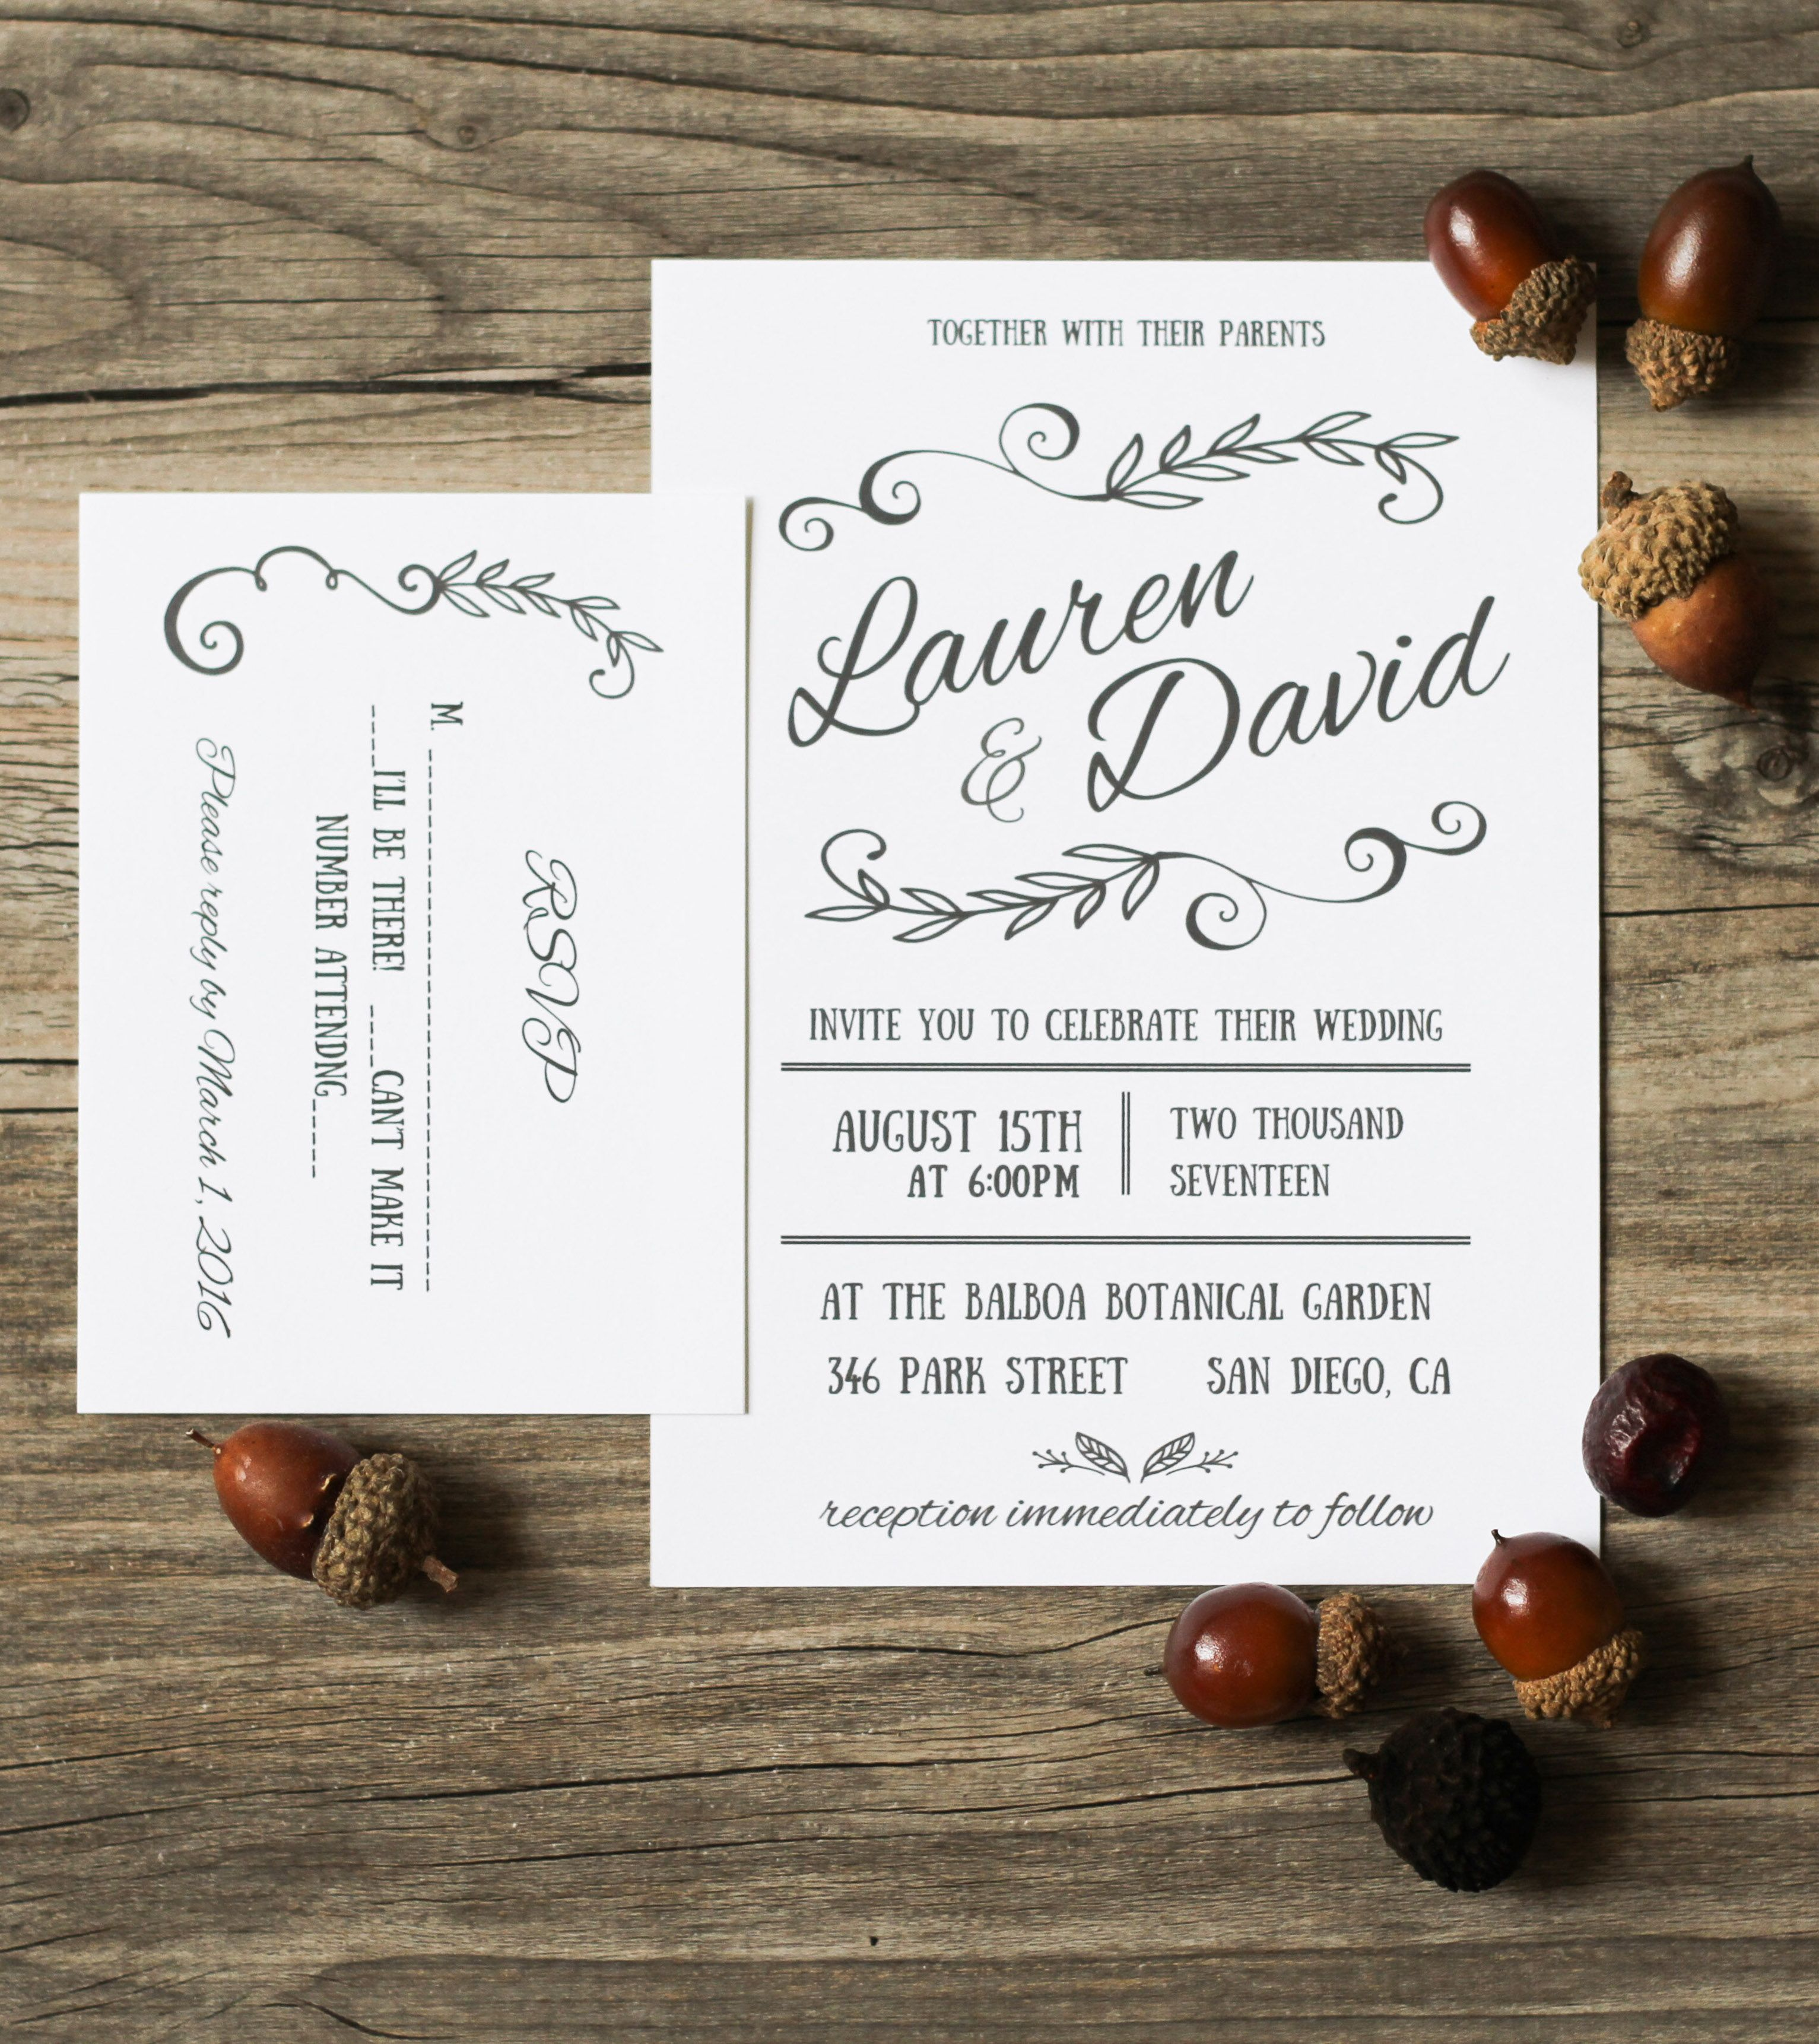 DIY Microsoft Word invitation templates that you